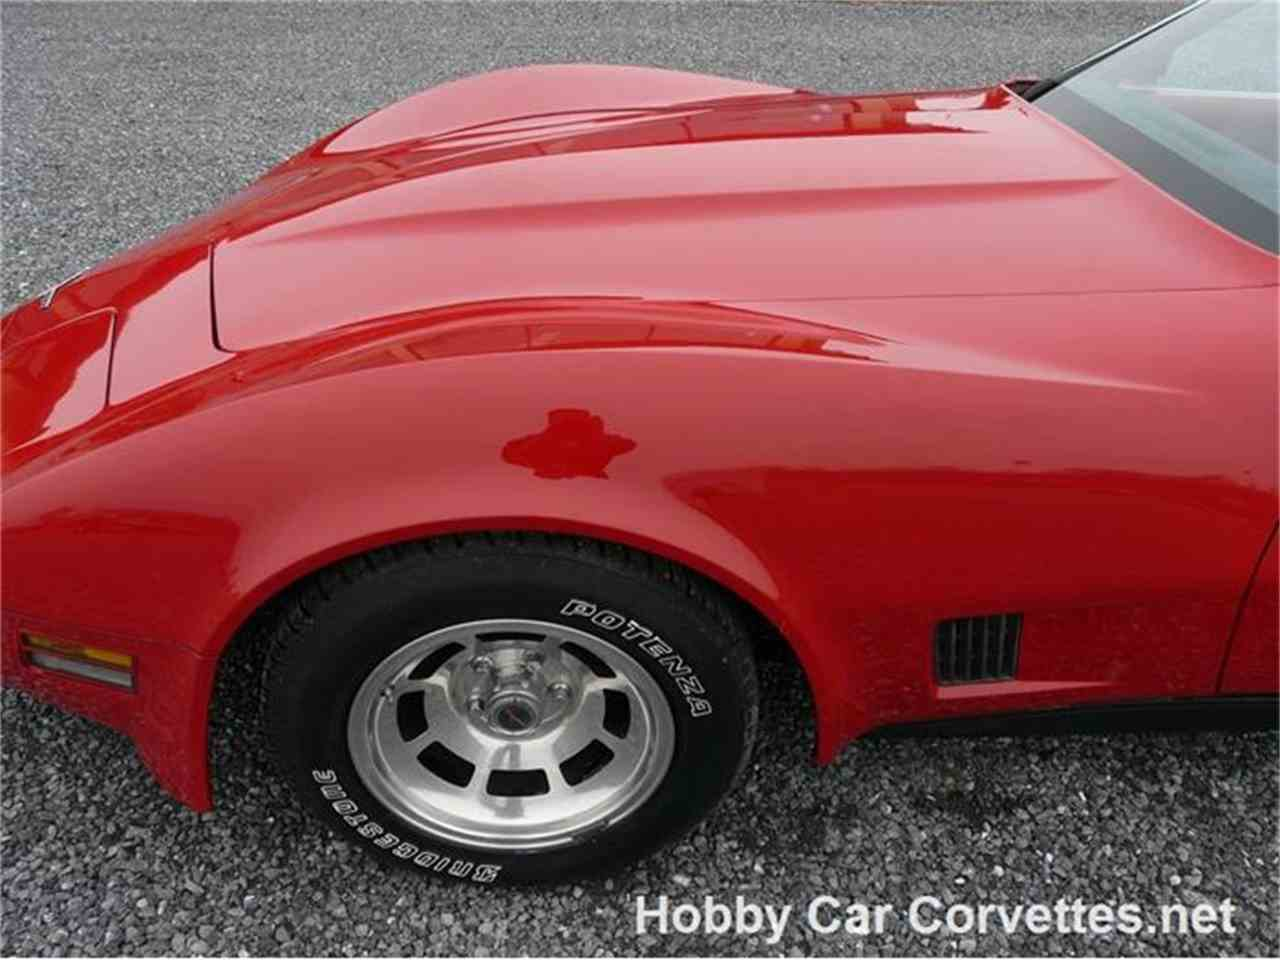 Large Picture of 1981 Corvette - $17,999.00 Offered by Hobby Car Corvettes - DVCX